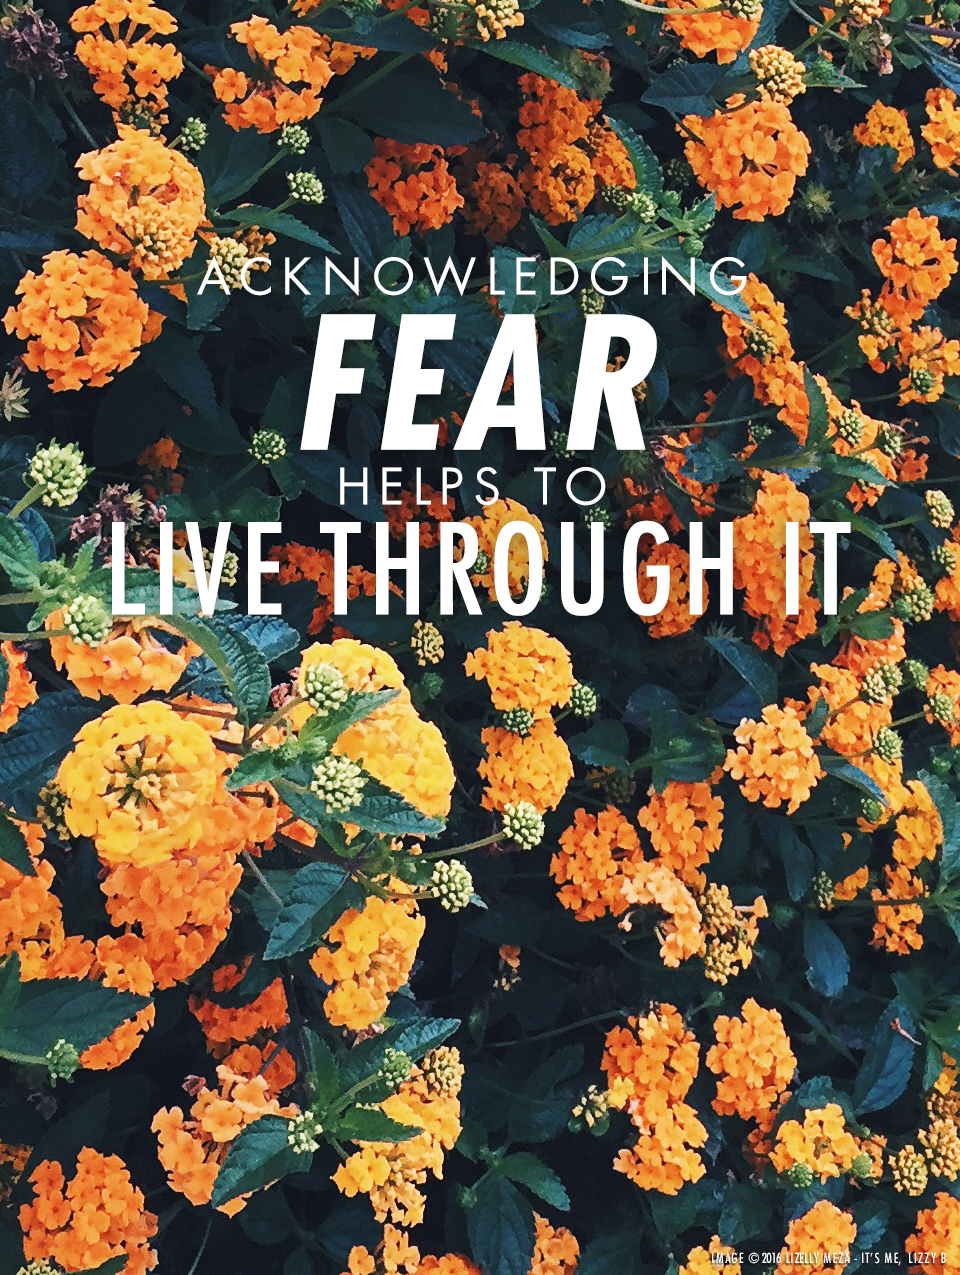 Acknowledging Fear Helps to Live Through It // It's Me, Lizzy B - Musings on Life, Business, & The Pursuit of Everyday Joy // Personal blog of Lizelly Meza from Lizzy B Loves